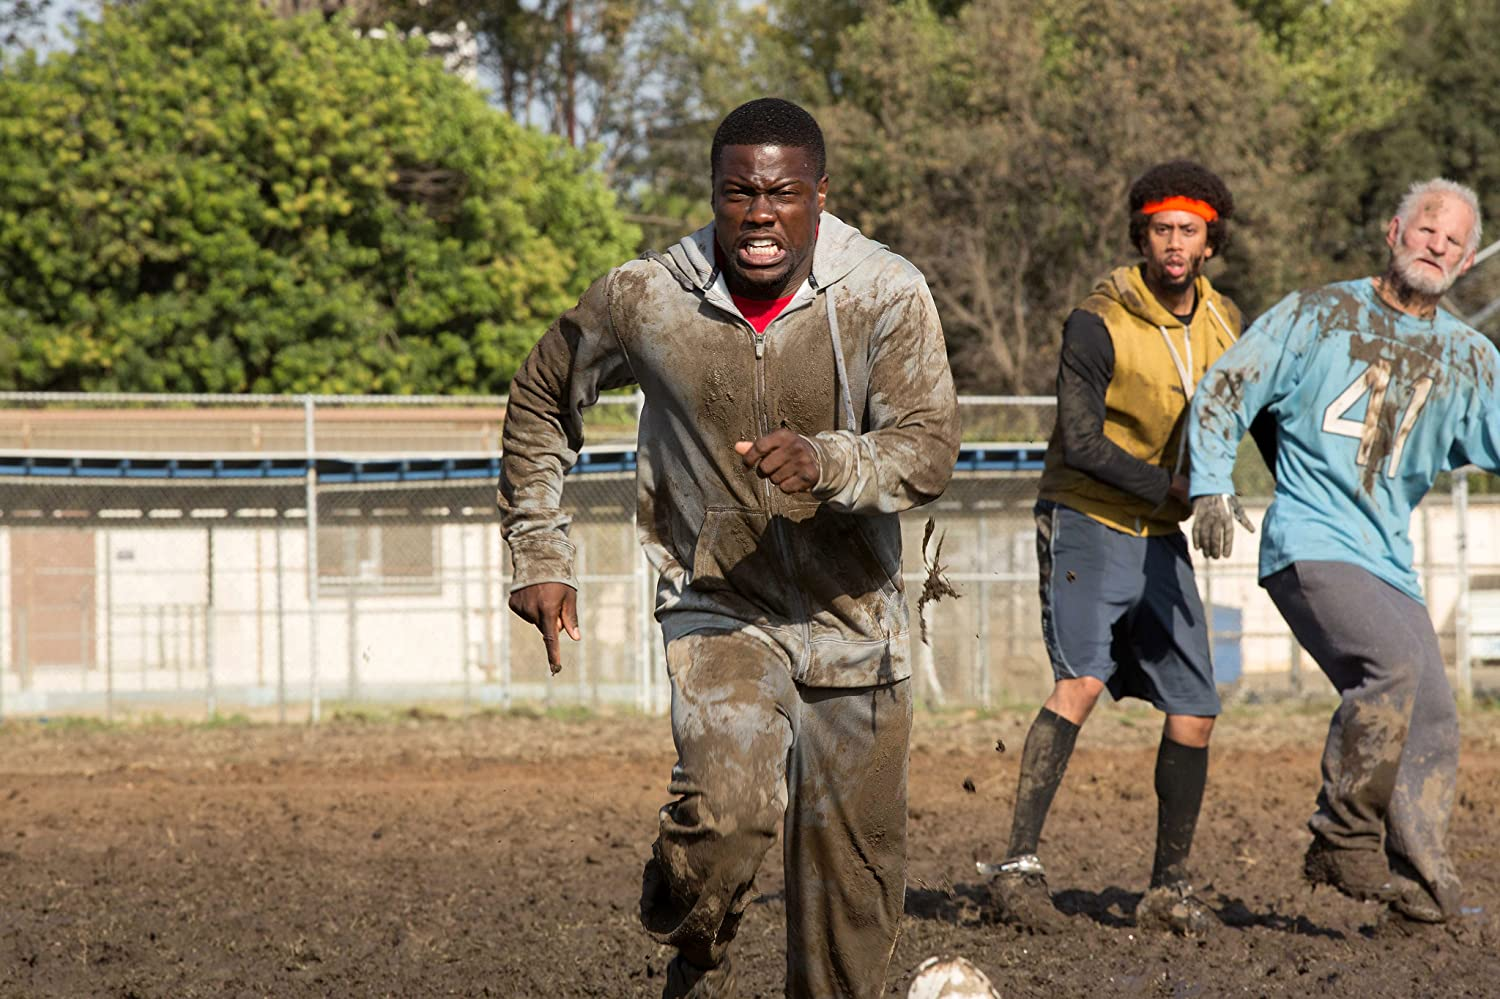 Kevin Hart in The Wedding Ringer (2015)